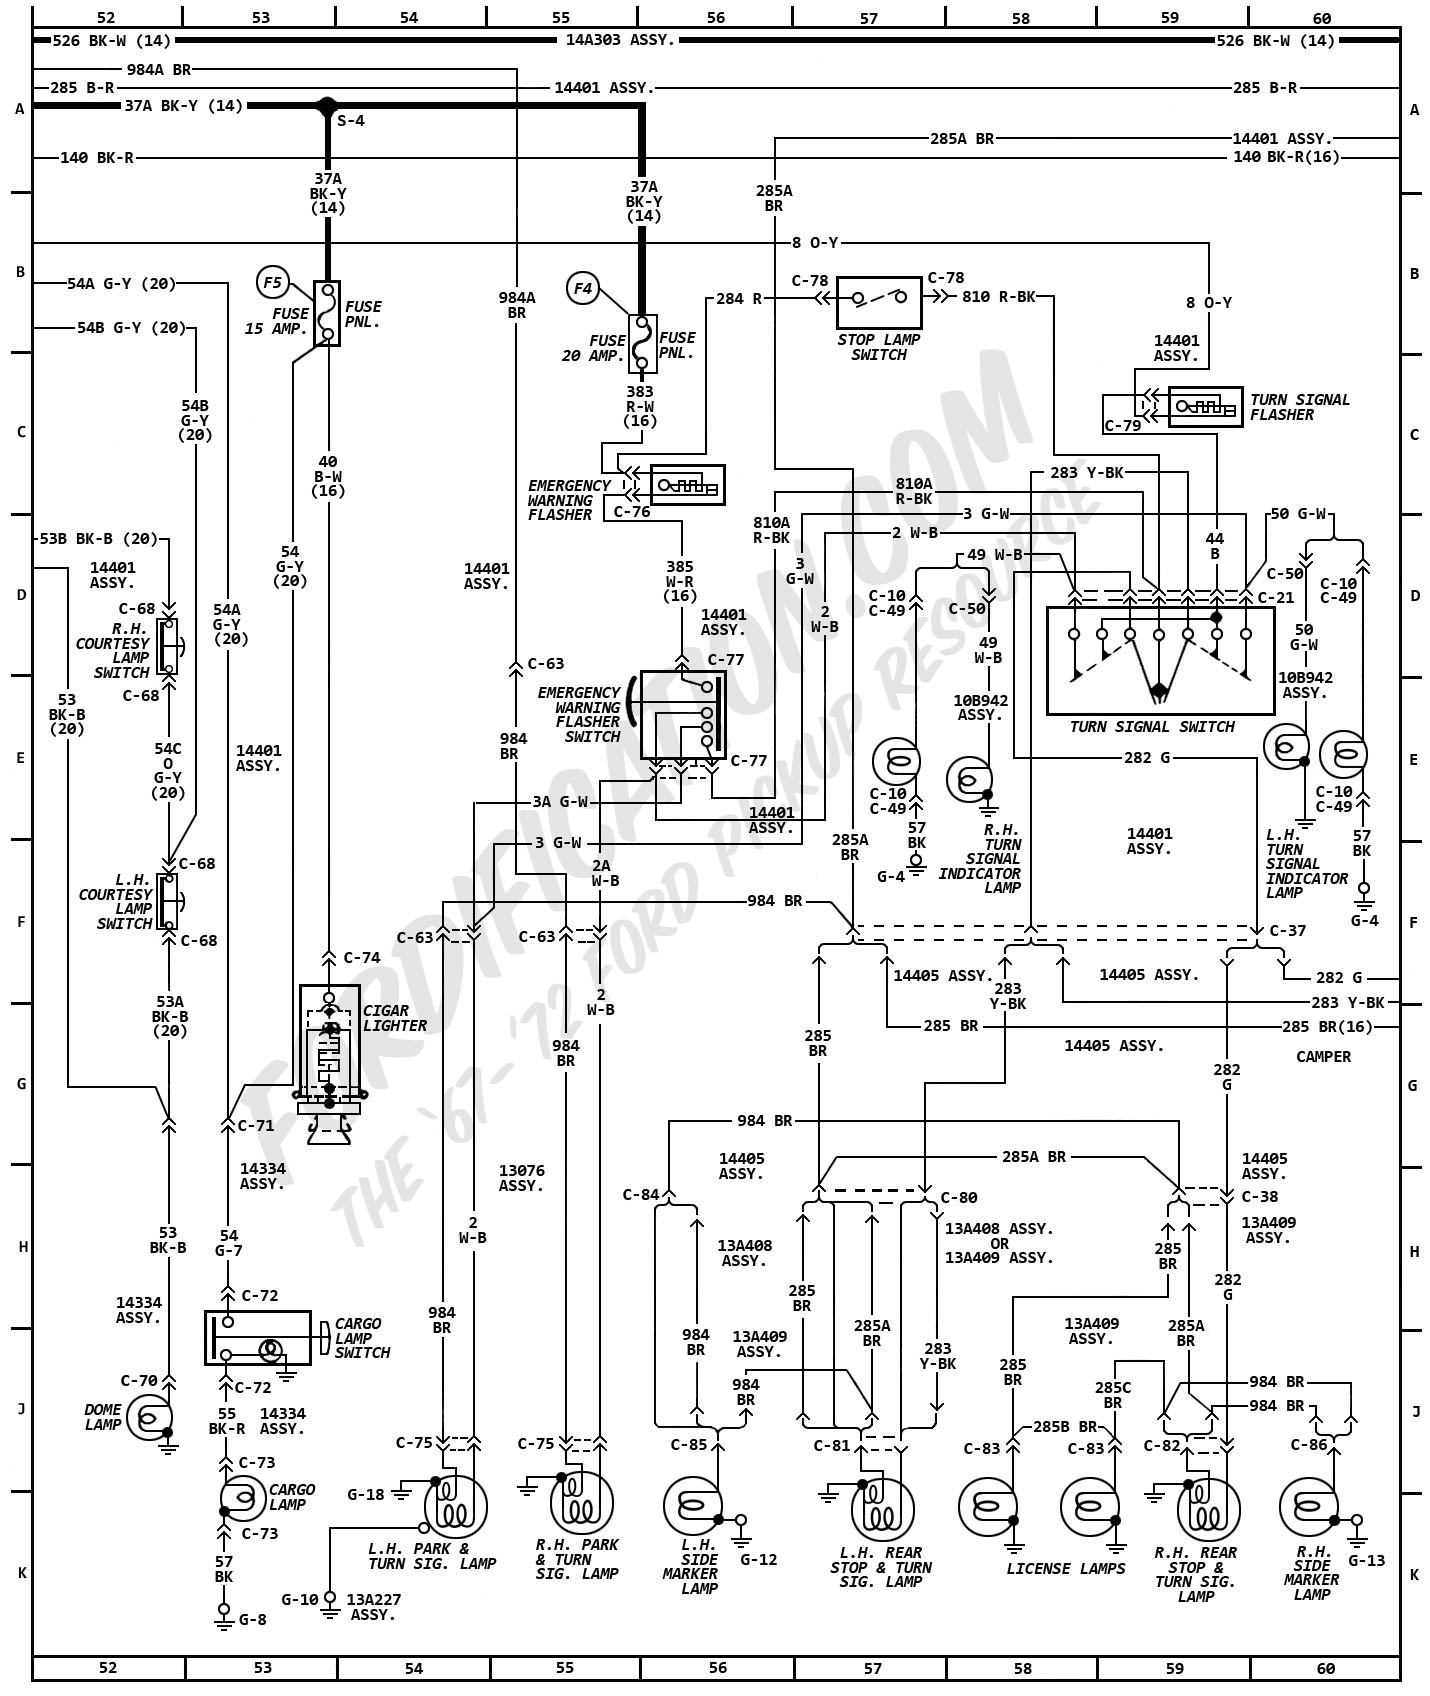 [DVZP_7254]   95B4C1 Diagram For Ignition Switch Wiring Ford Truck | Wiring Library | 1966 Ford F100 Blinker Switch Wiring |  | Wiring Library